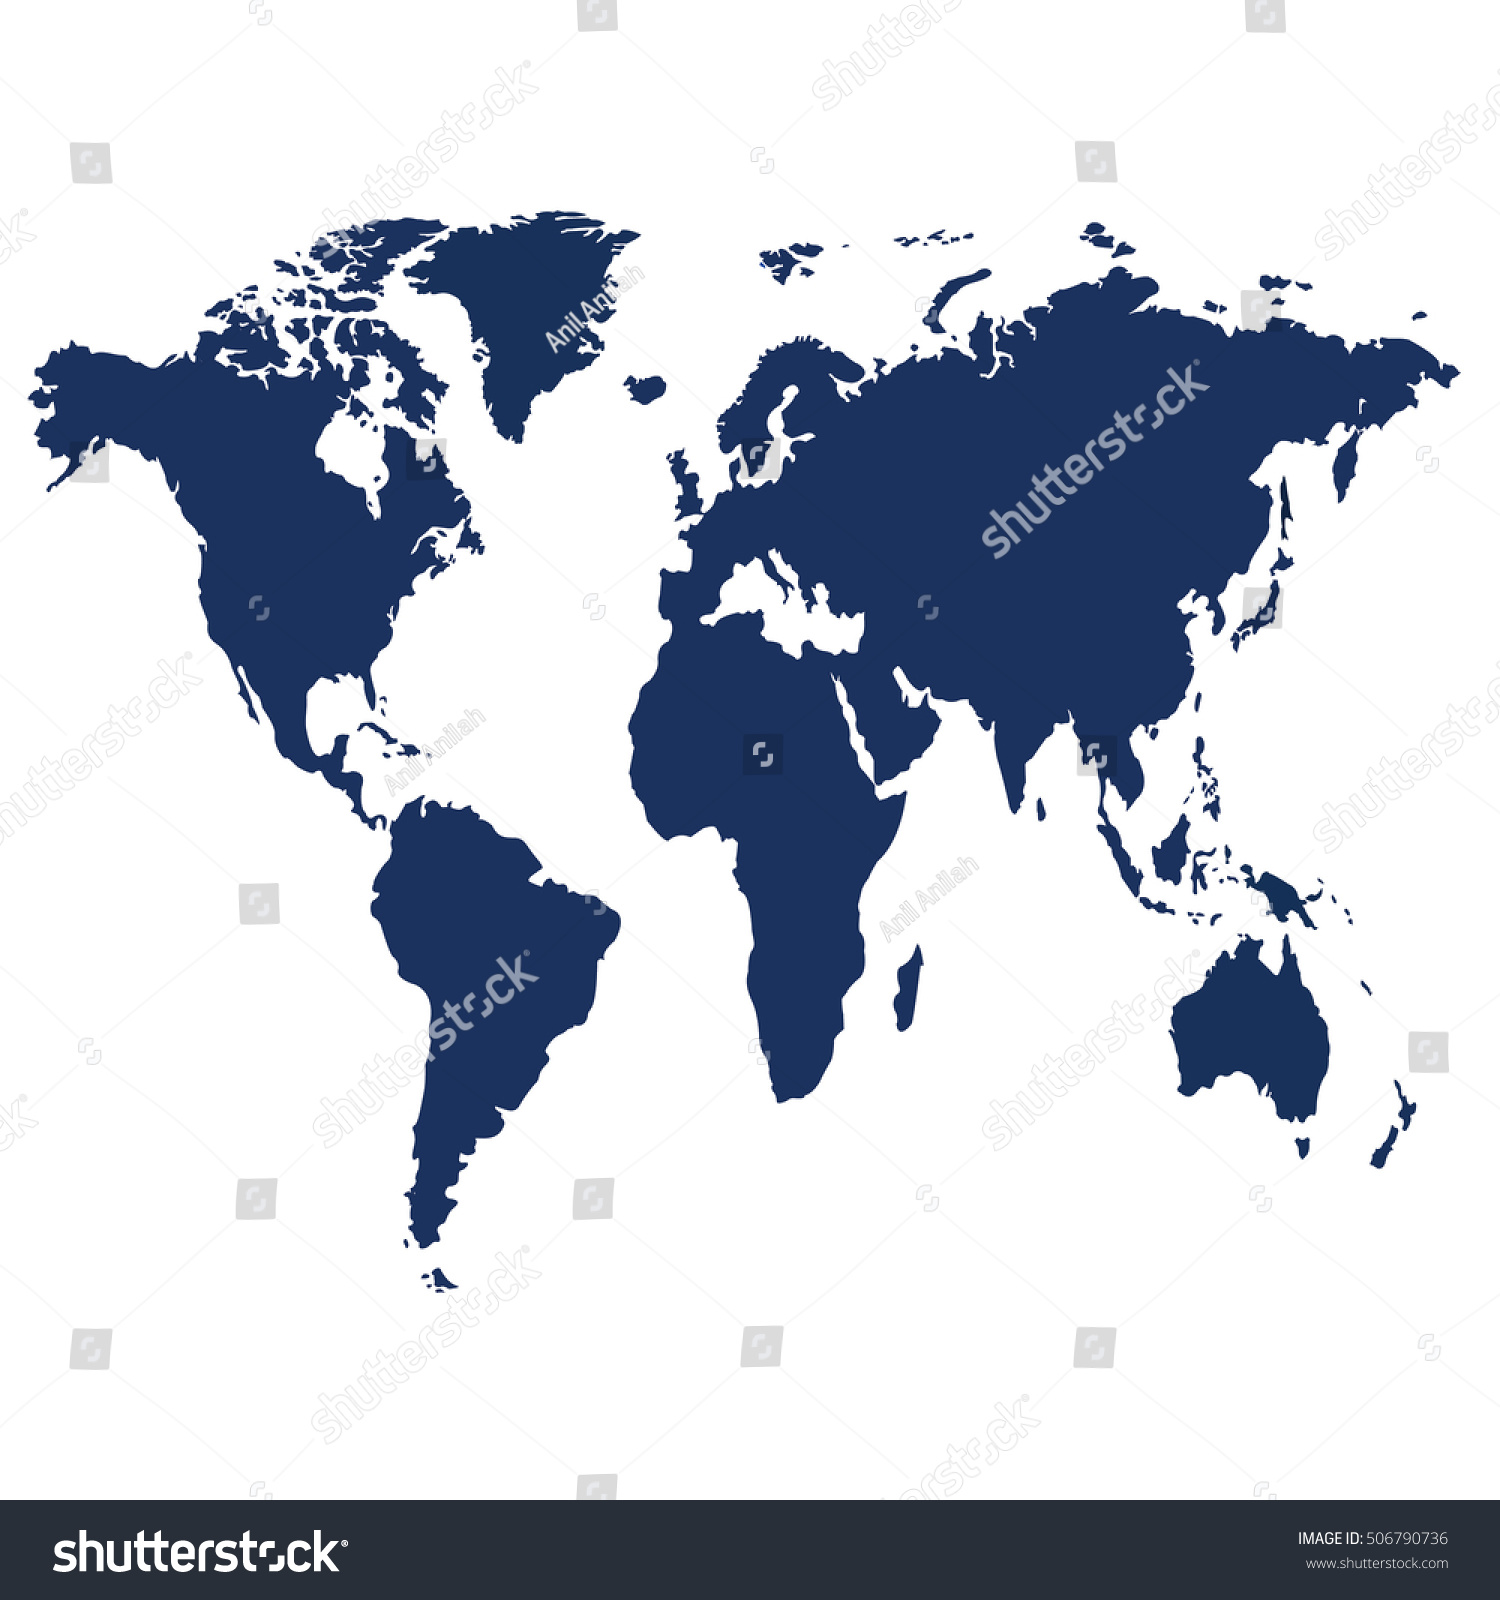 Blank blue similar world map isolated stock vector 506790736 blank blue similar world map isolated on white background best popular world map vector template gumiabroncs Image collections